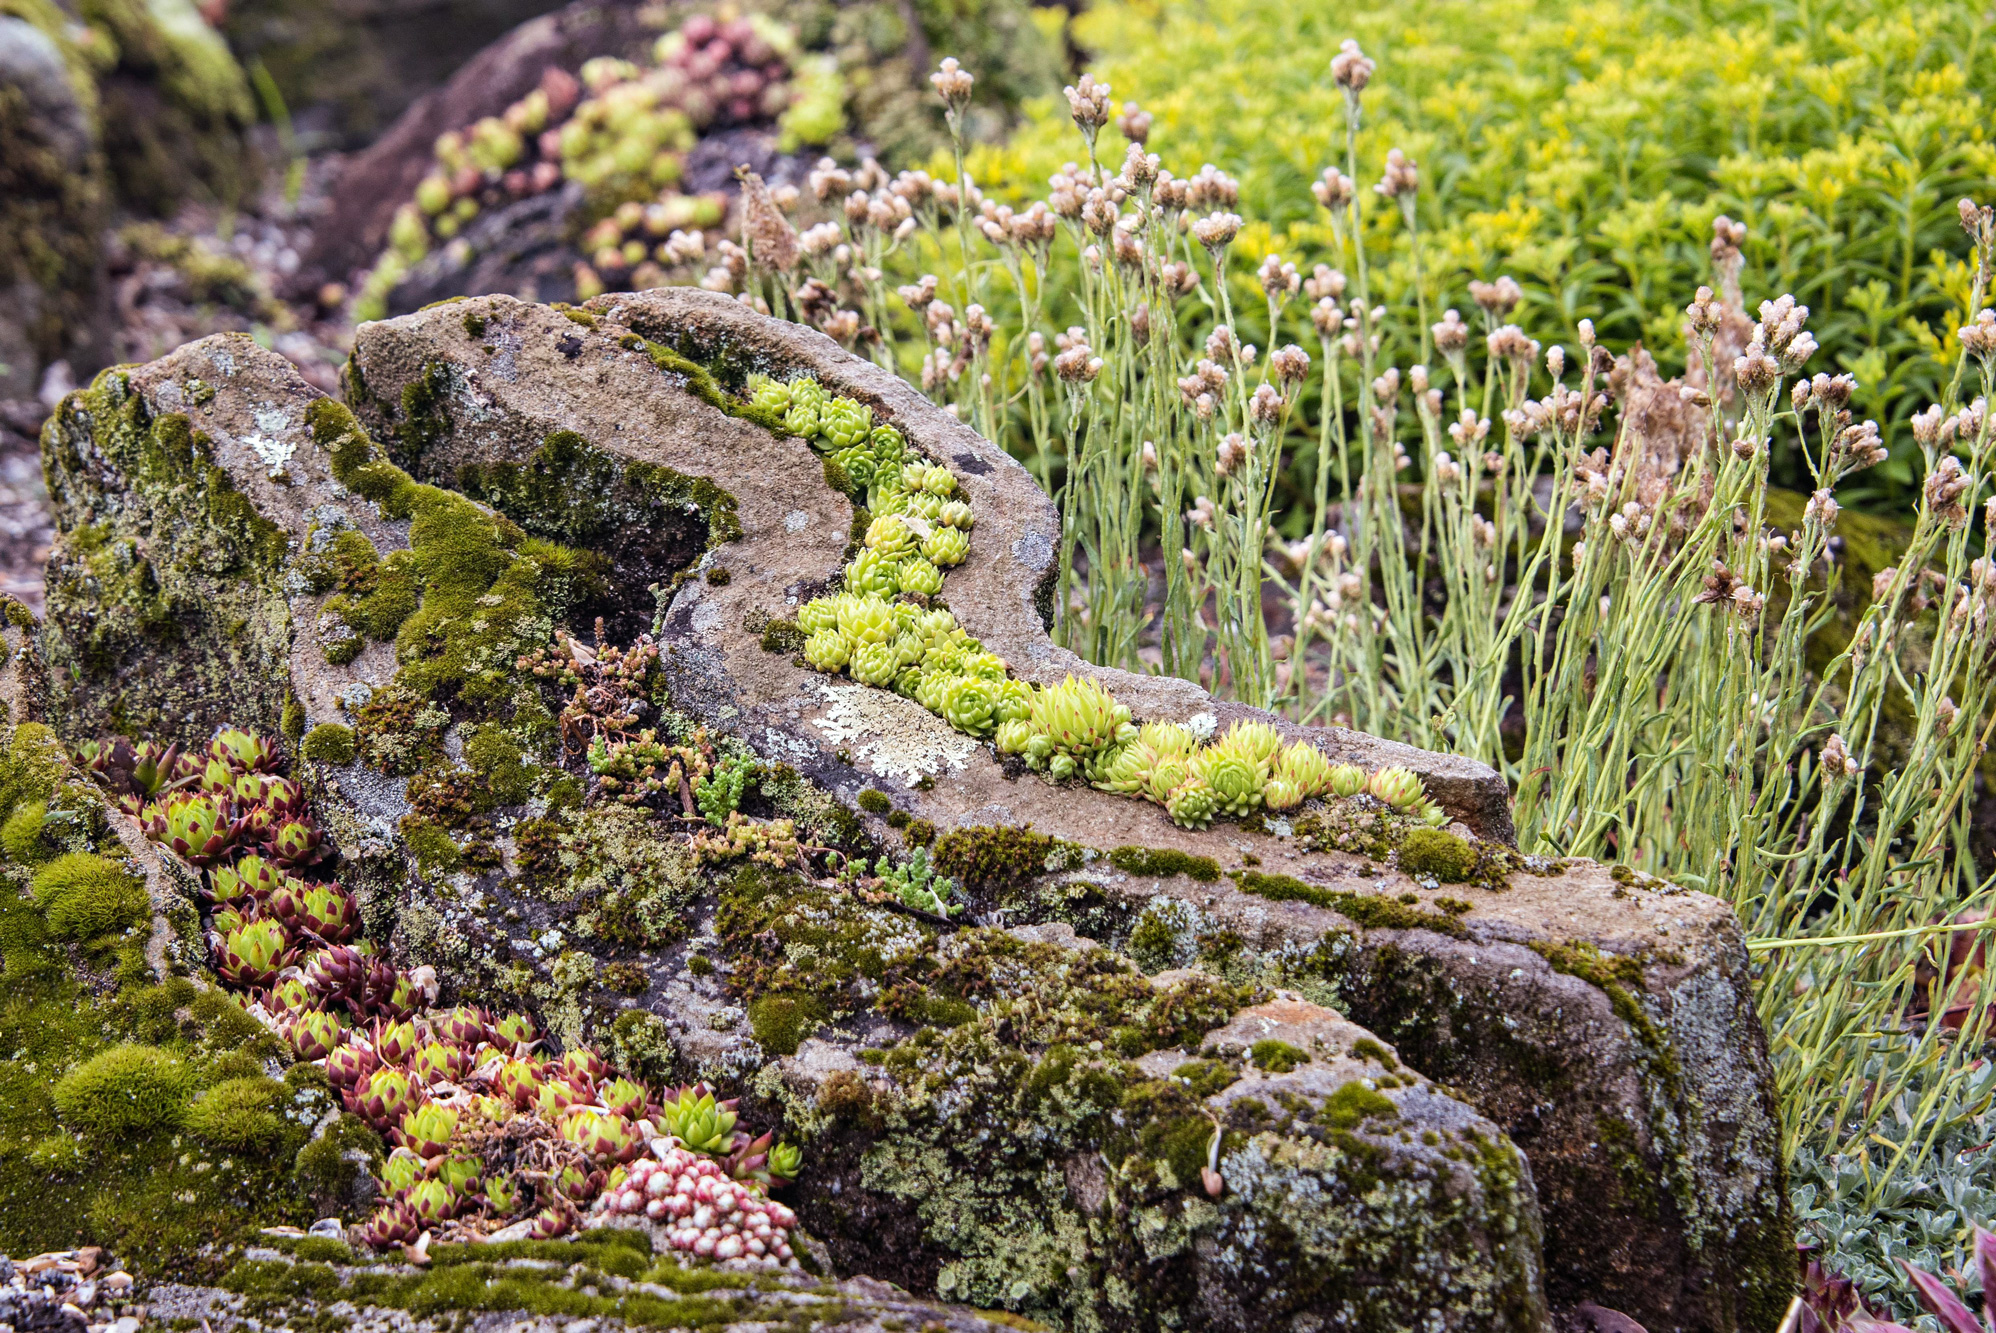 In A Succulent Rock Garden Design Carved Out Of Rock And Built On The Will  To Survive, Brandhorst And His Succulents Show Just How Tough And Adaptable  They ...